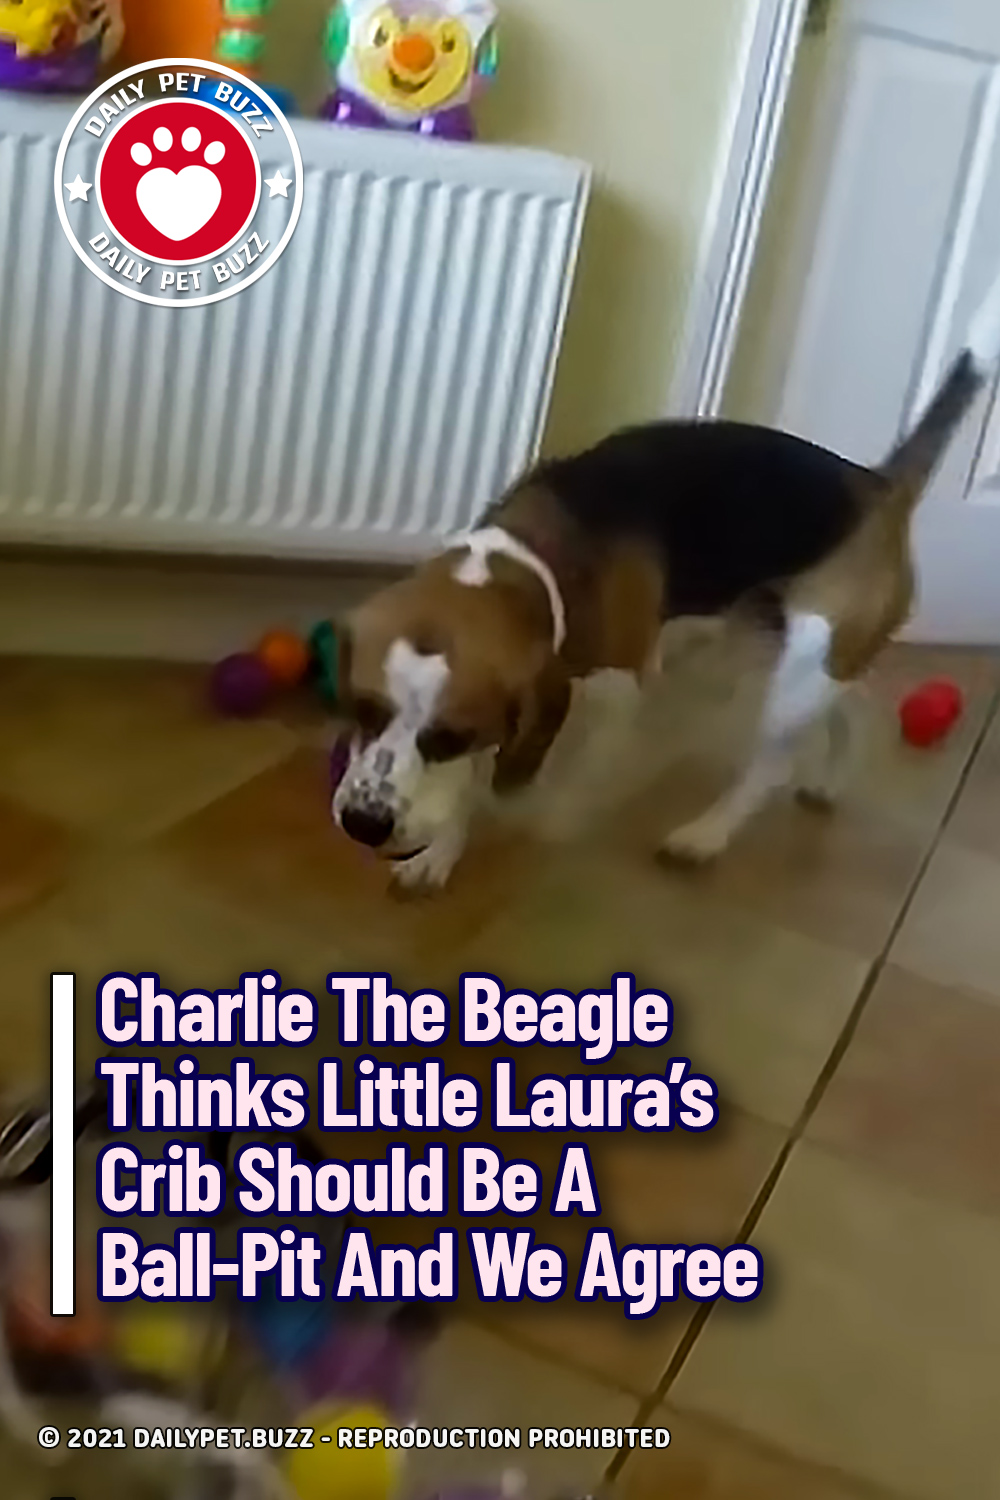 Charlie The Beagle Thinks Little Laura\'s Crib Should Be A Ball-Pit And We Agree